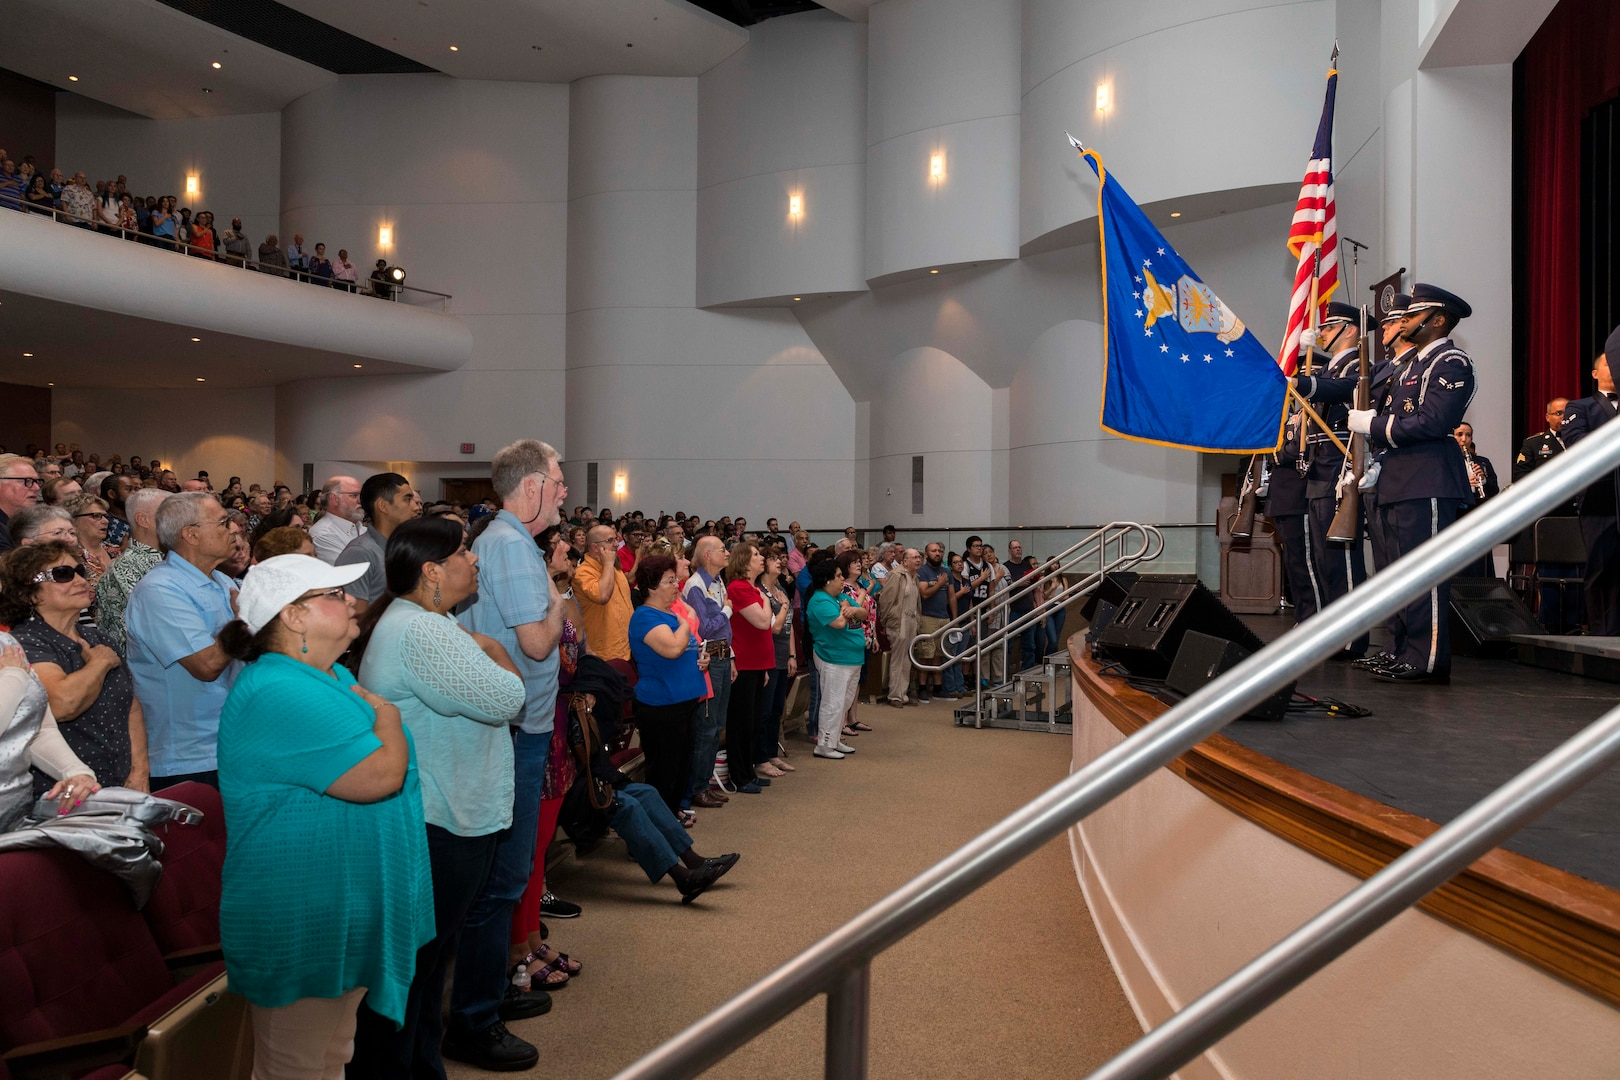 Civilians and military members render honors as the national anthem is played prior the Band of the West performance in San Antonio, Texas April 24, 2018. The act was dedicated to the 300th Anniversary of San Antonio and honors the city's military heritage. Since 1891, Fiesta has grown into an annual celebration that includes civic and military observances, exhibits, sports, music and food representing the spirit, diversity and vitality of San Antonio. (U.S. Air Force photo by Ismael Ortega / Released)